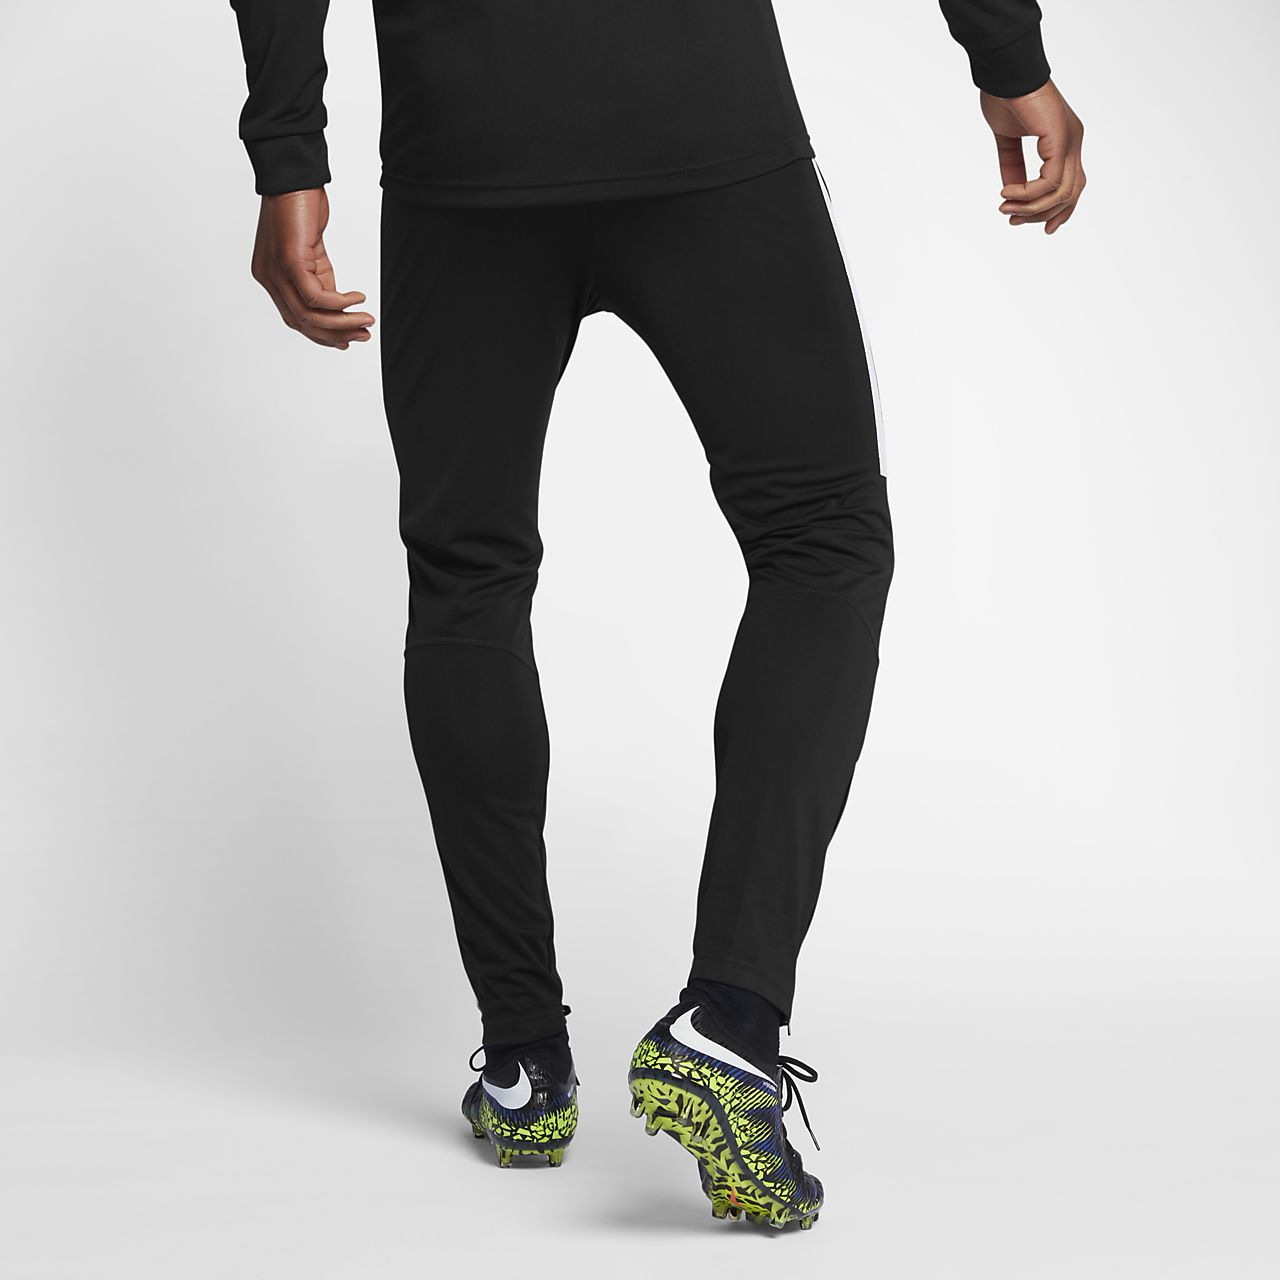 28458a918 Nike Dri-FIT Men s Football Tracksuit. Nike.com GB